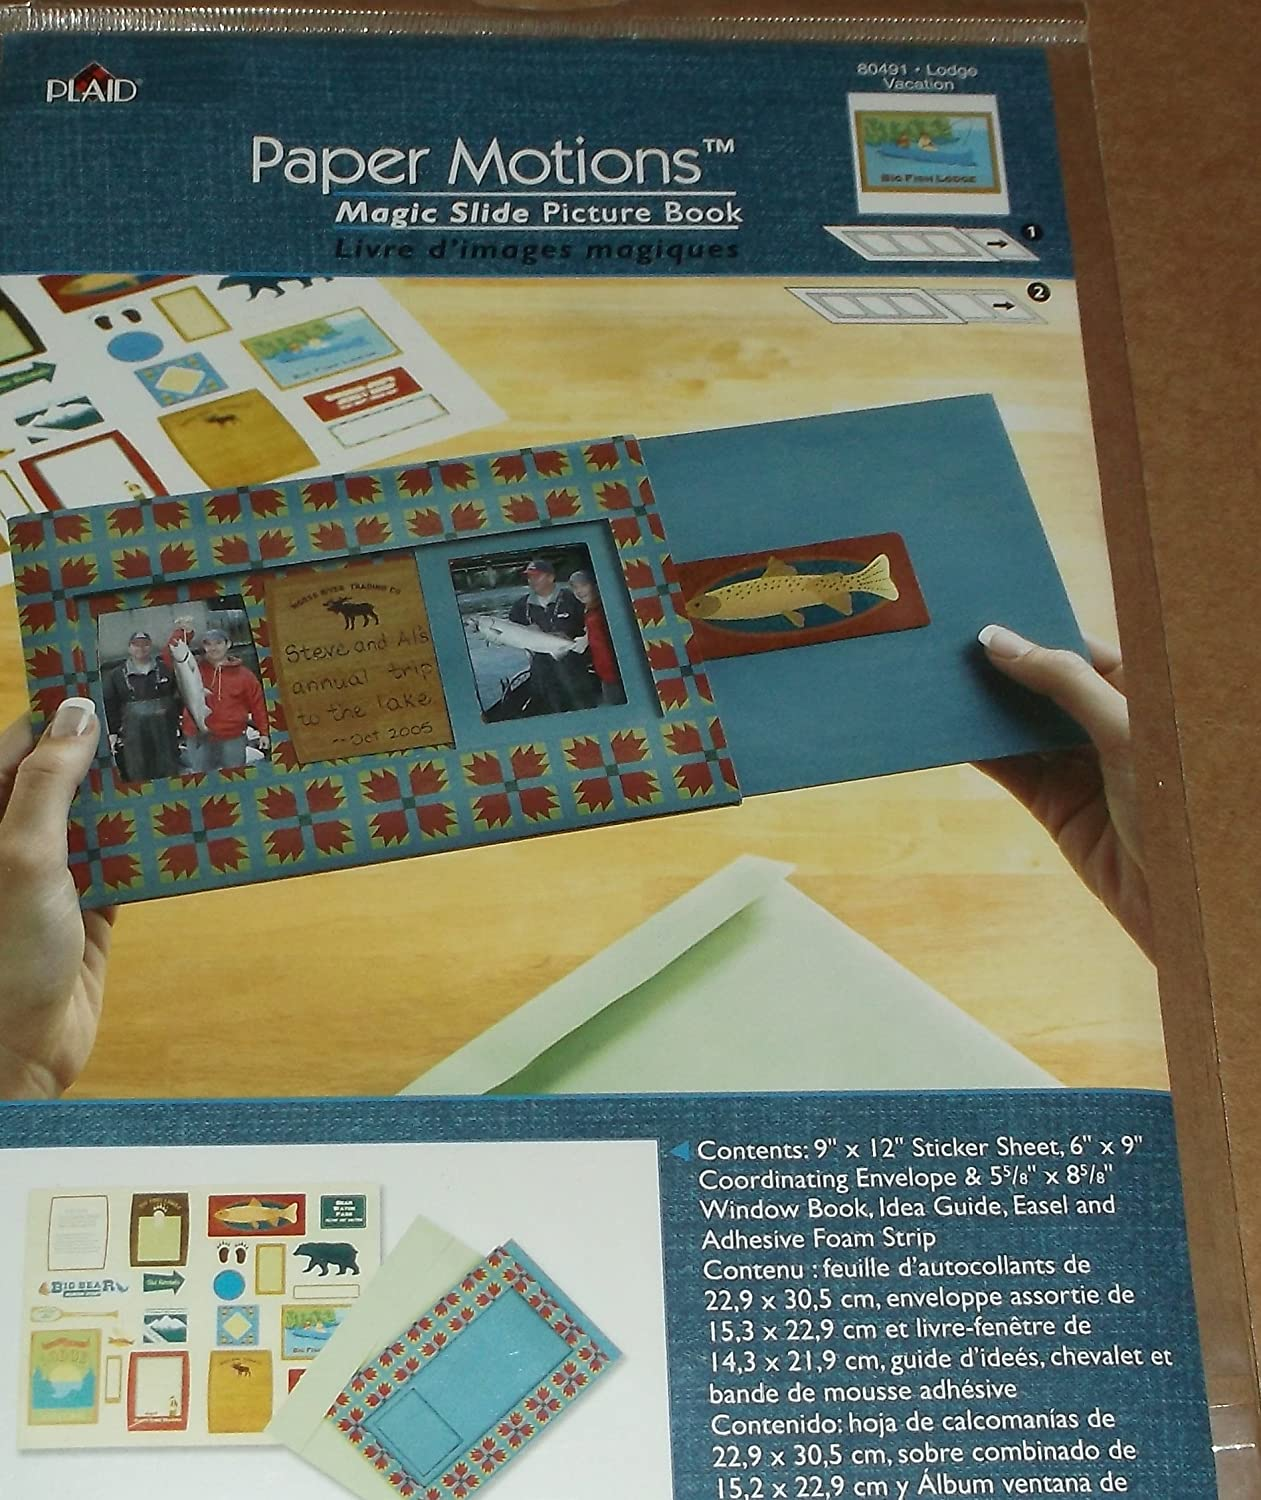 Plaid Paper Motions Magic Slide Book - Lodge, Fishing Vacation - 80491 Structural Graphics